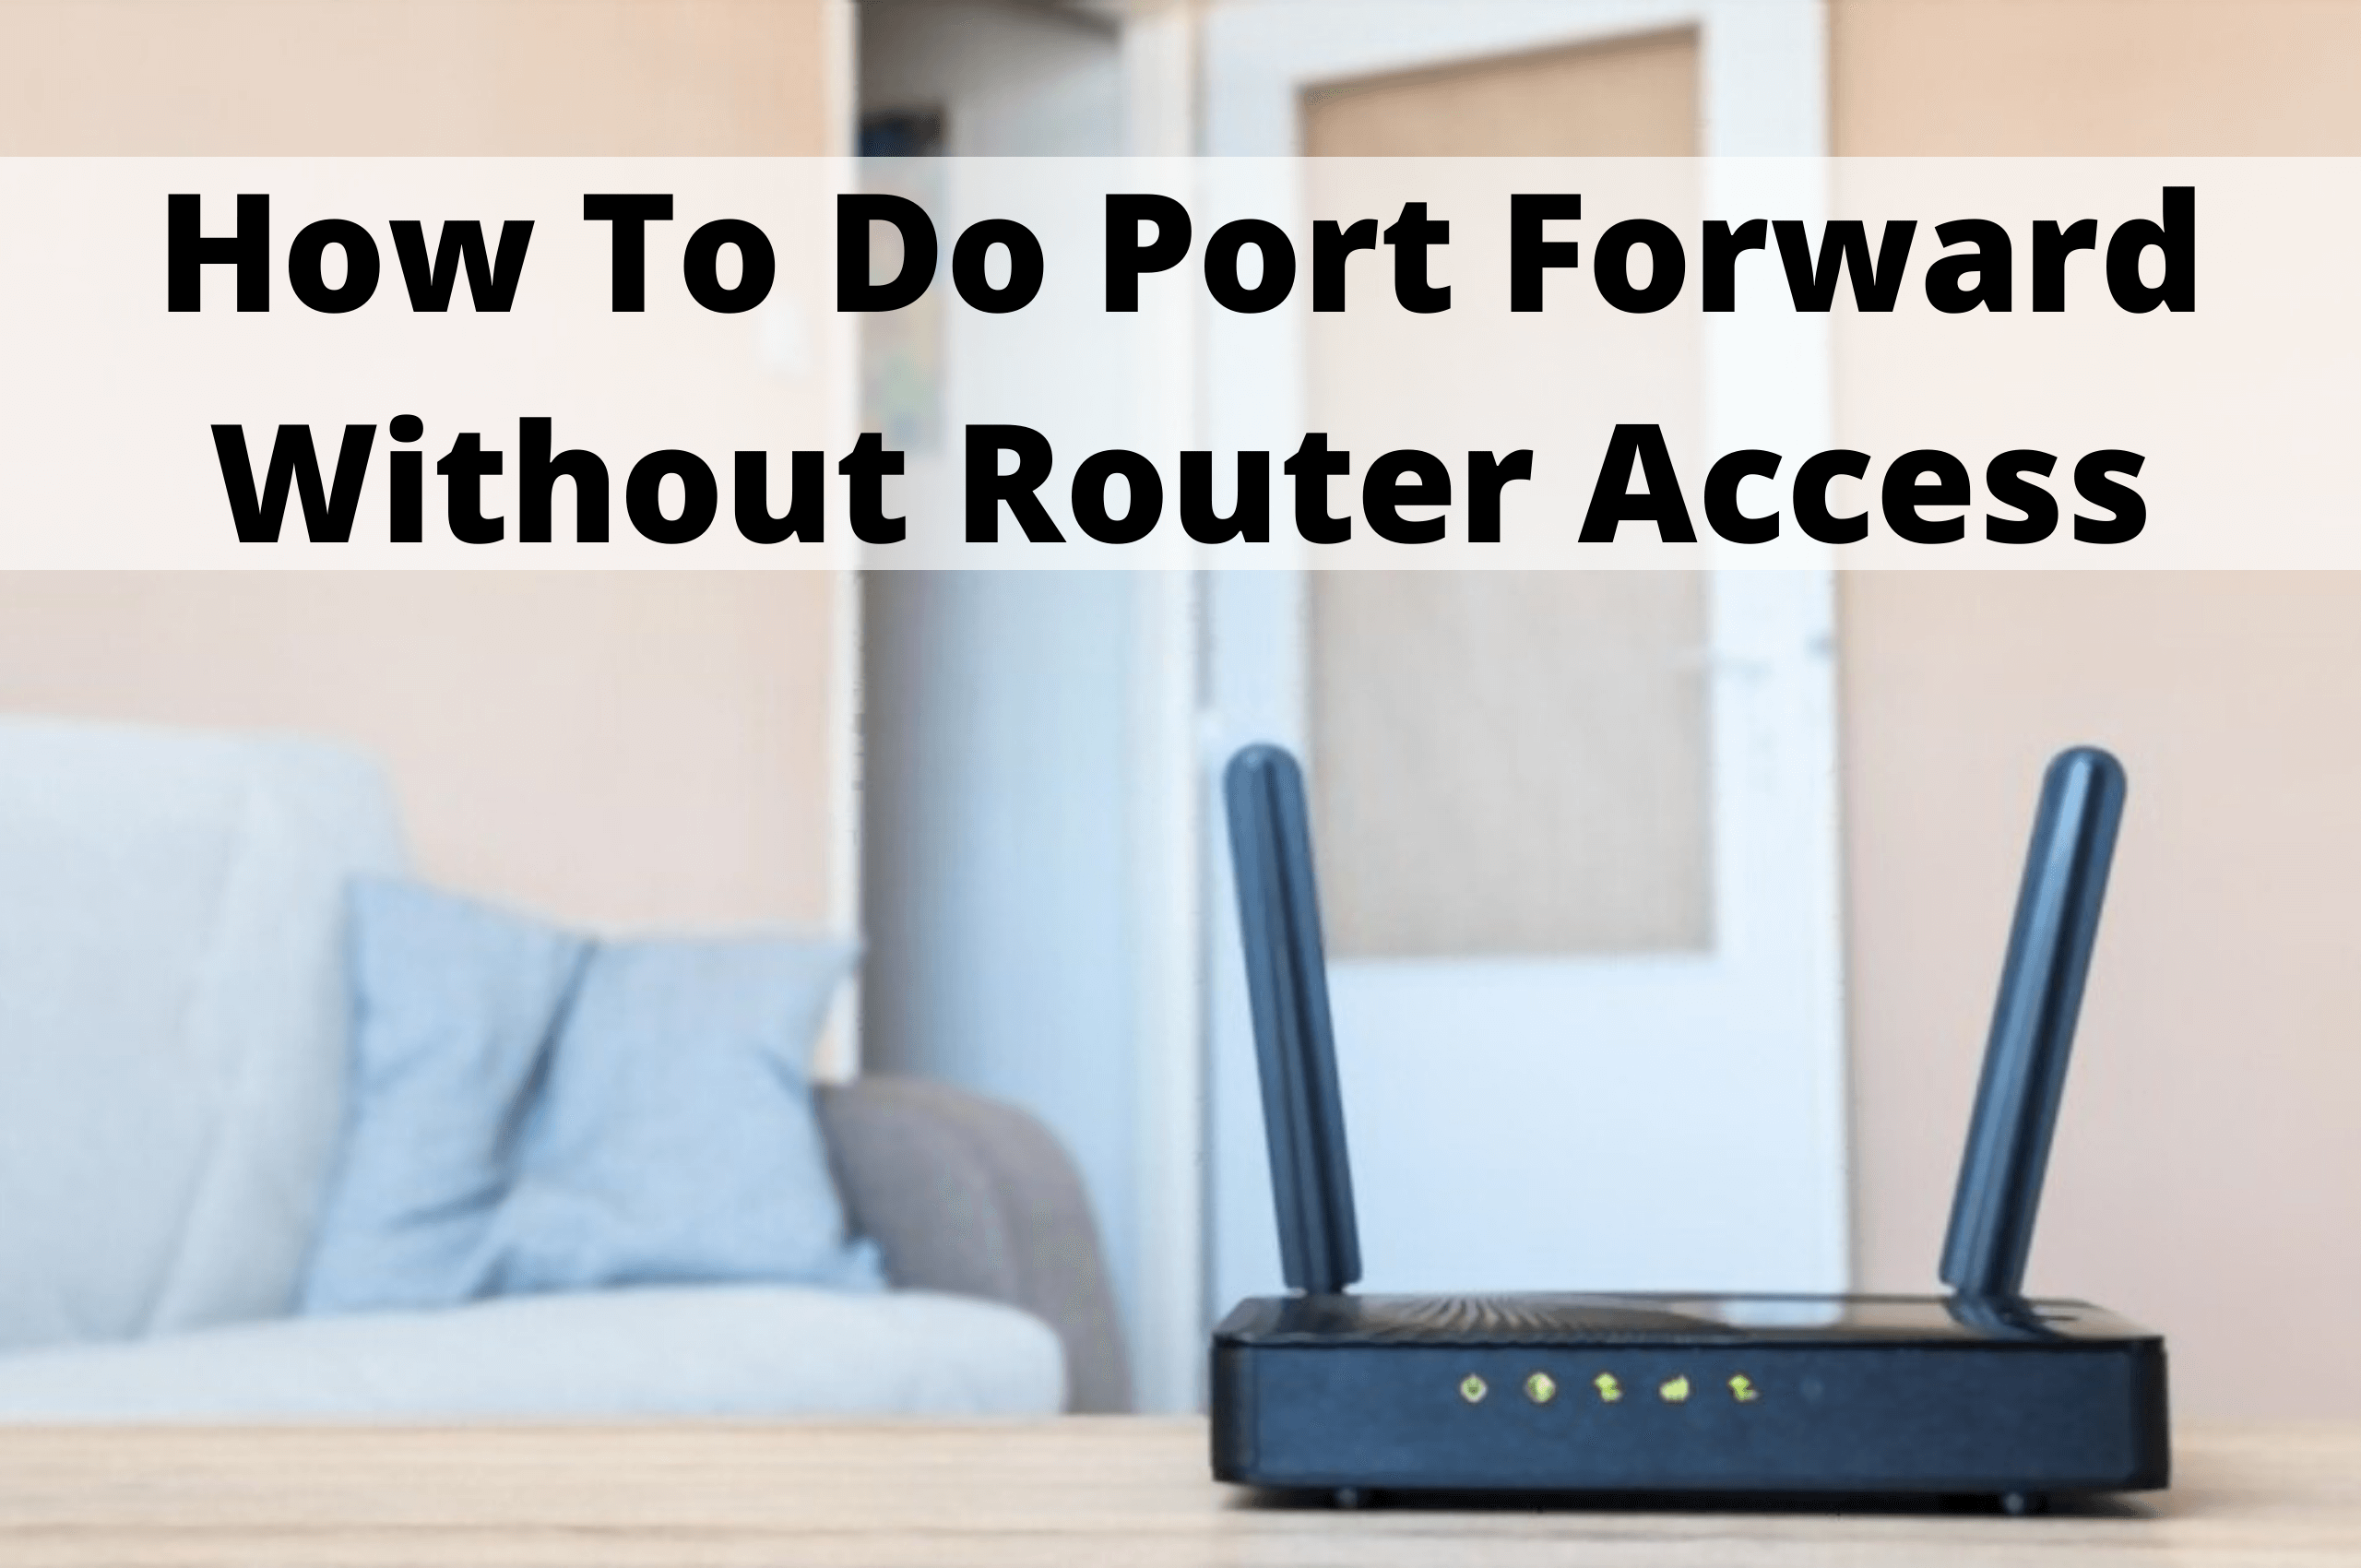 port forward without router access